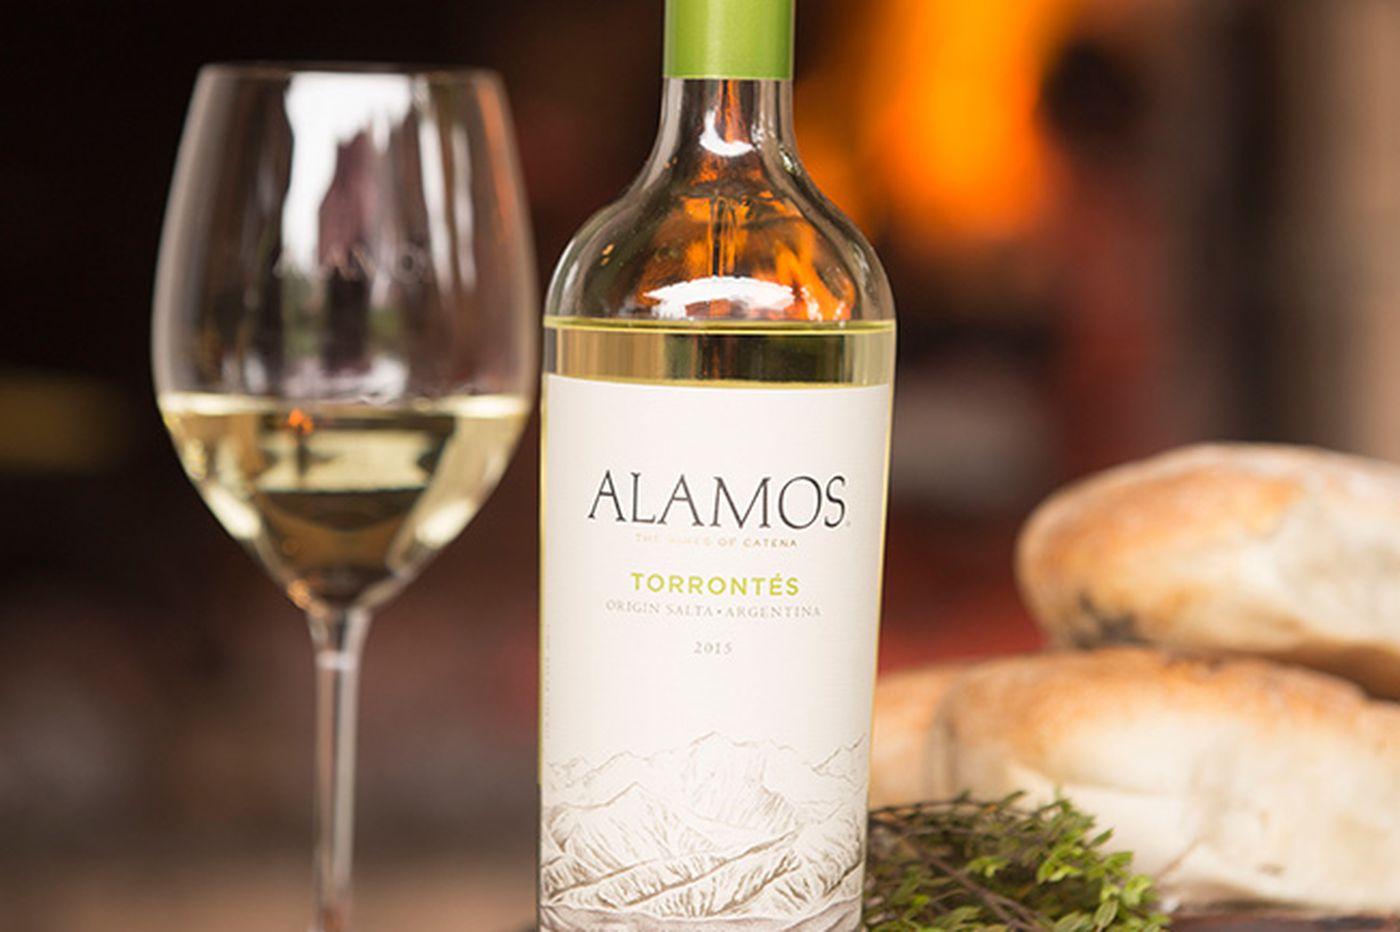 For $10, an uncommon dry white wine from Argentina's Salta region